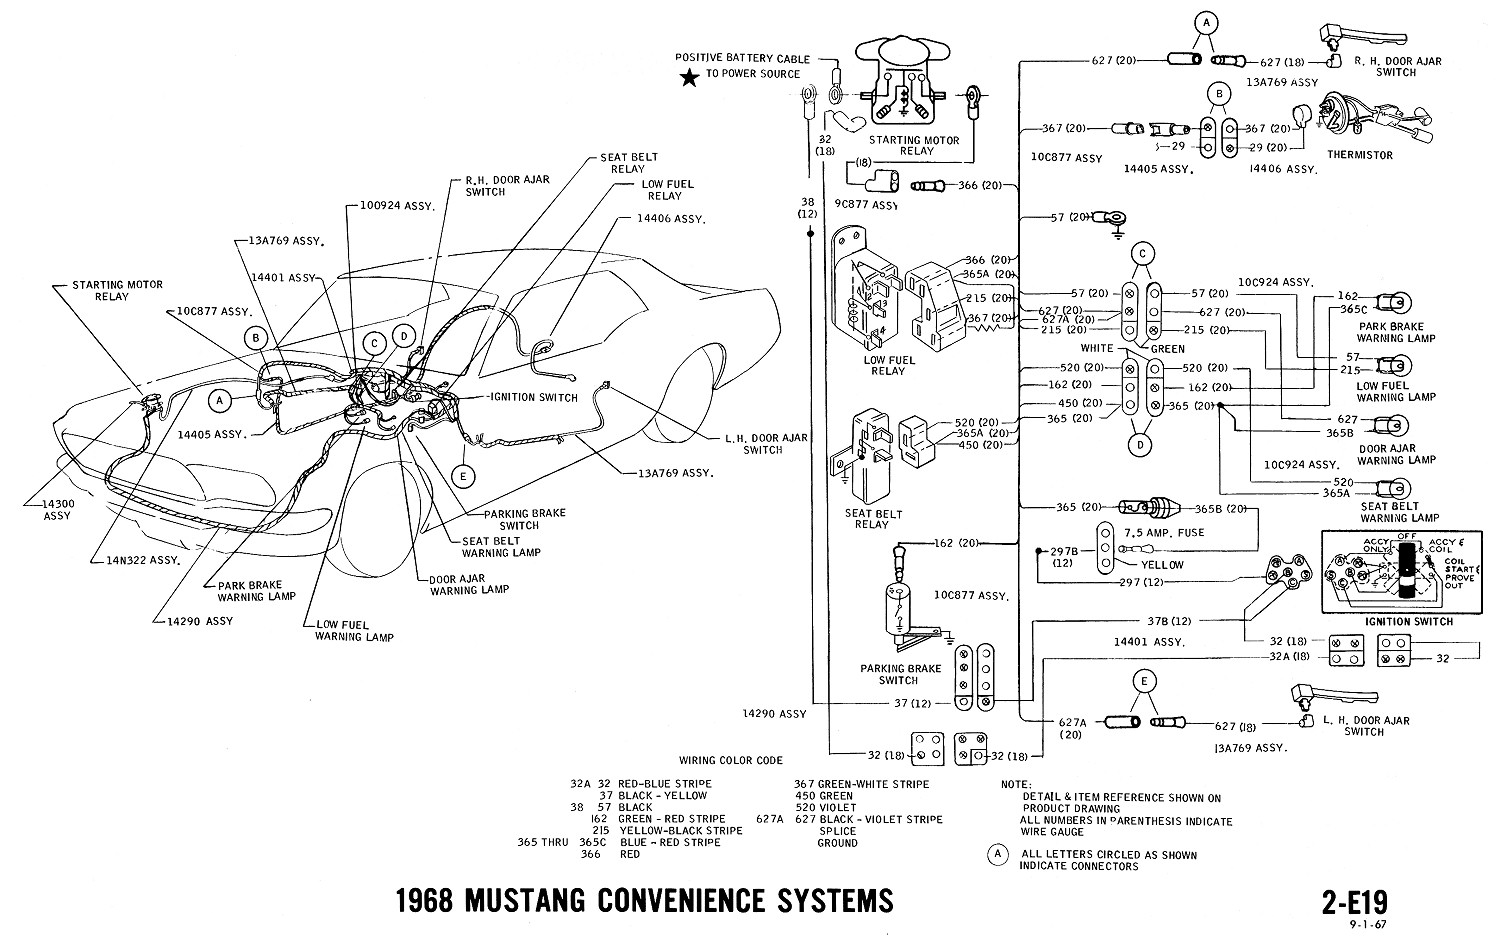 Mustang Wiring Diagram Convenience Systems